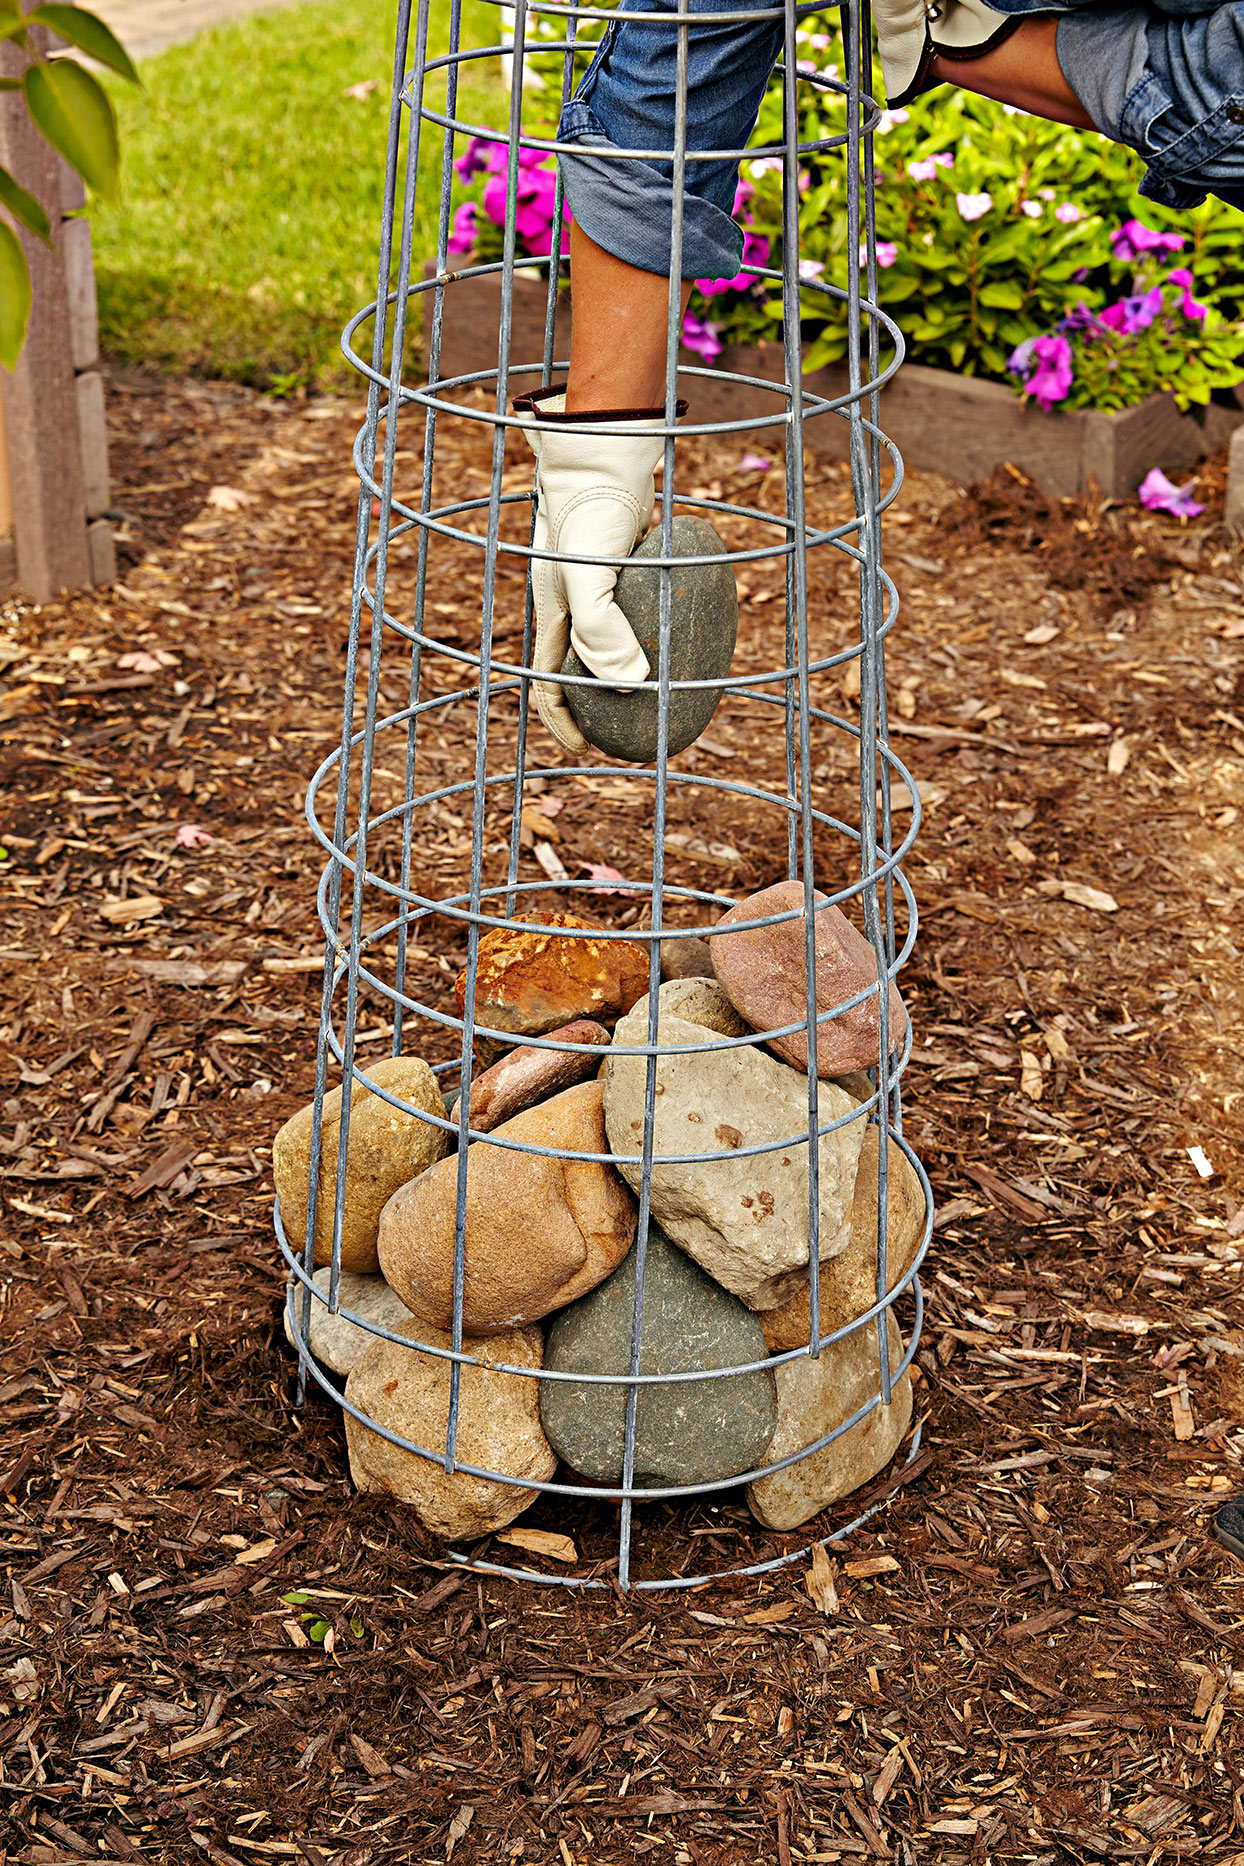 gabion cage filled with stones on mulch